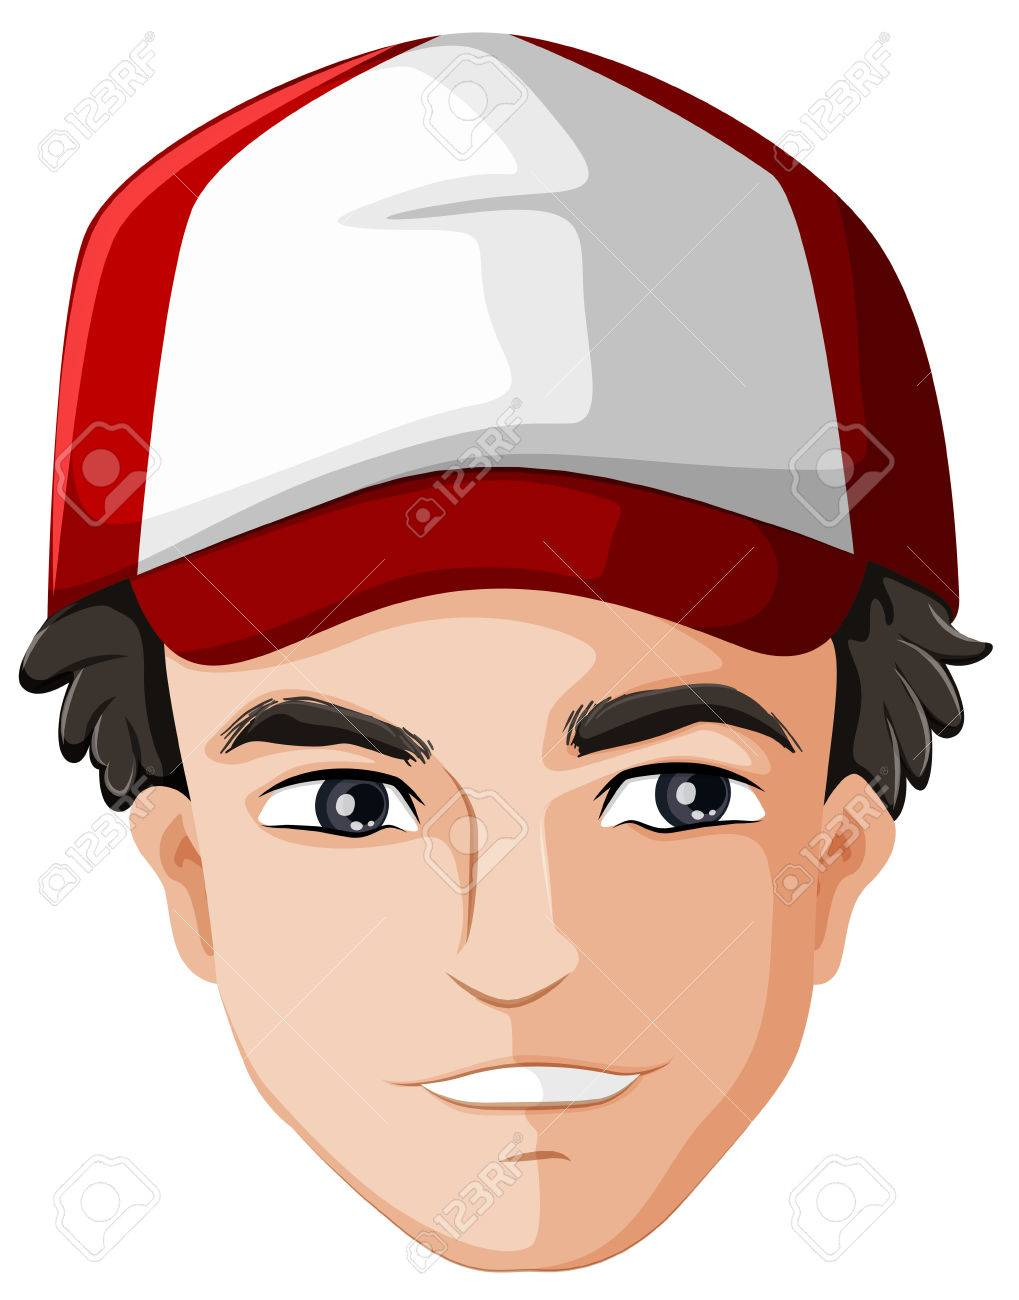 Illustration of a man's head with a cap on a white background Stock Vector - 23977130